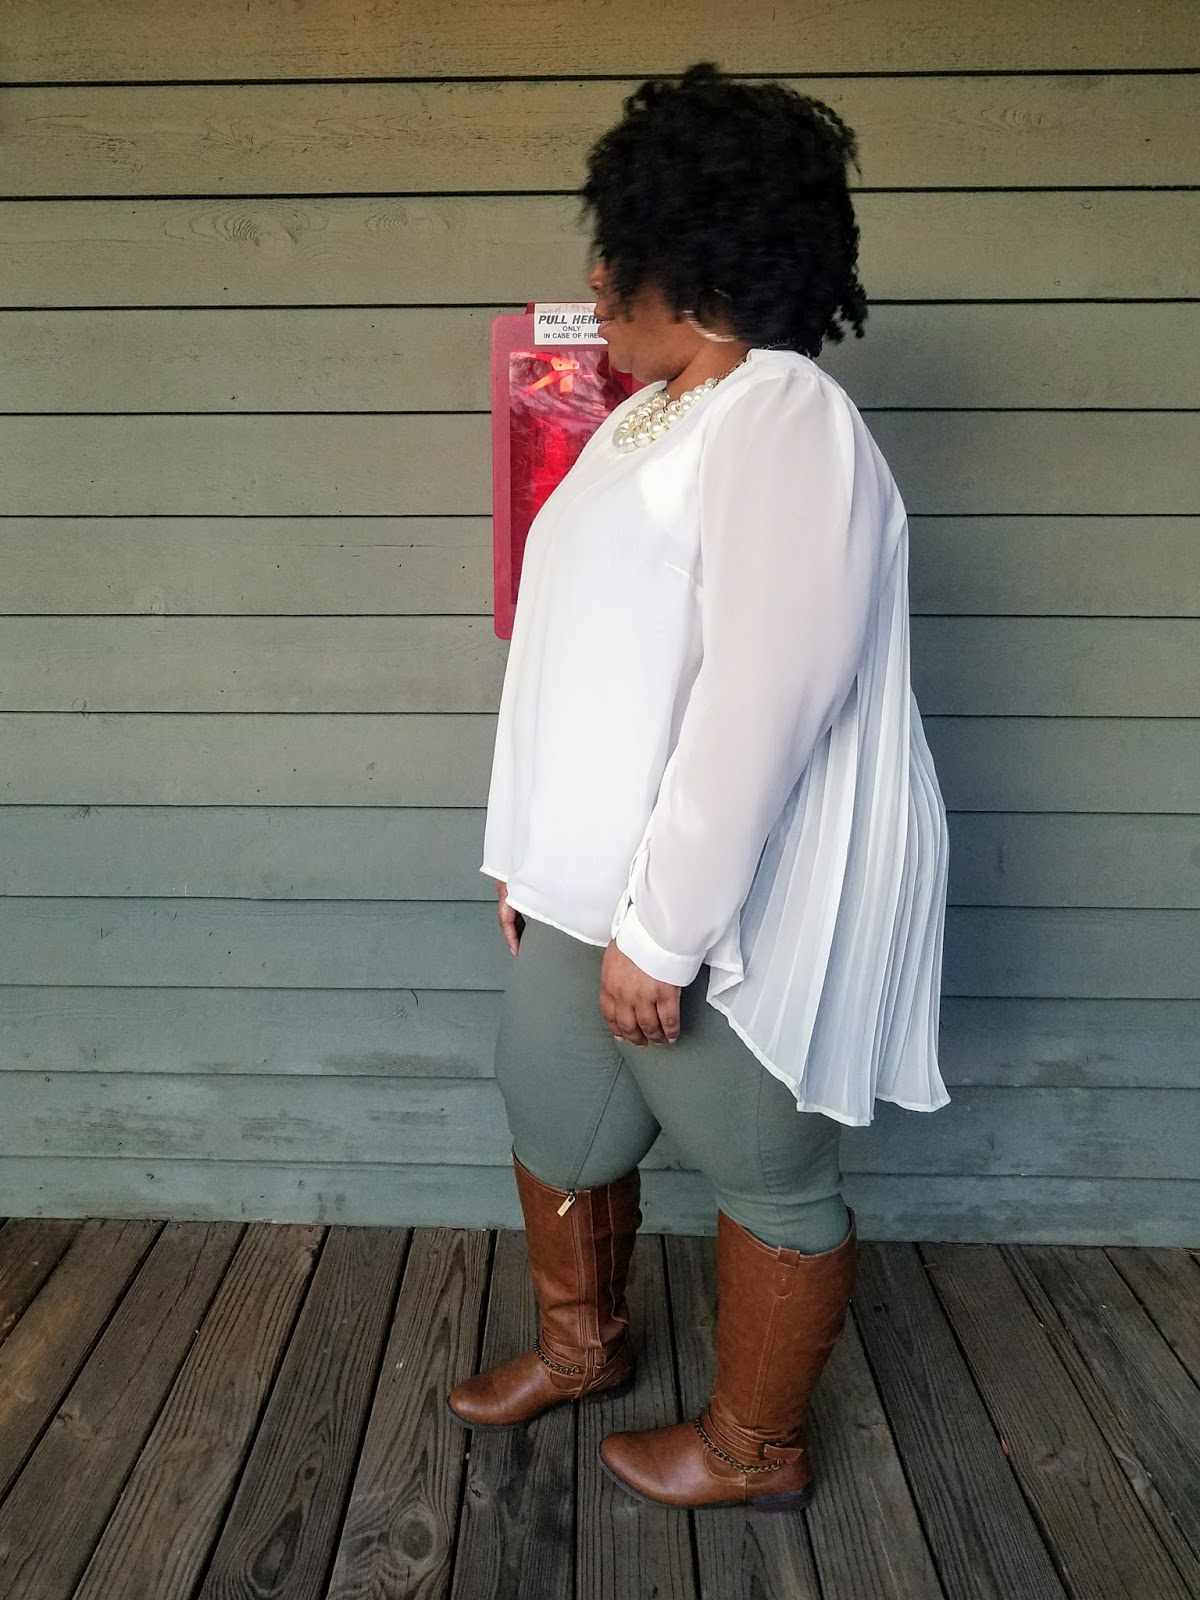 plus size, curvy model, flowy blouse, tall boots, jeggings, kinky natural hair, side pose